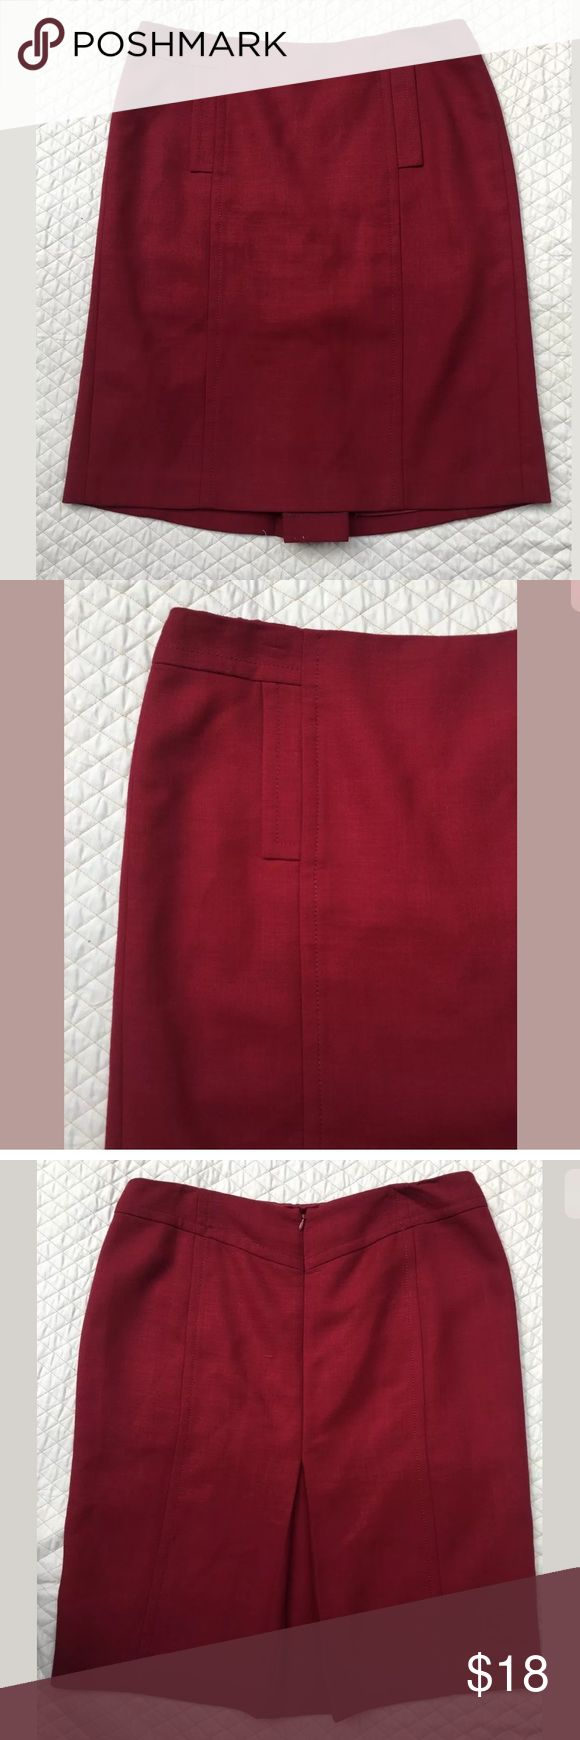 Ann Taylor Size 14 Red Straight Pencil Skirt Ann Taylor burgandy color, size 14 skirt. Waist measures 17.5. Length from waist to bottom is 24.5 inches. Pockets on the front sides. Zipper on the back. Fully lined Ann Taylor Skirts Asymmetrical